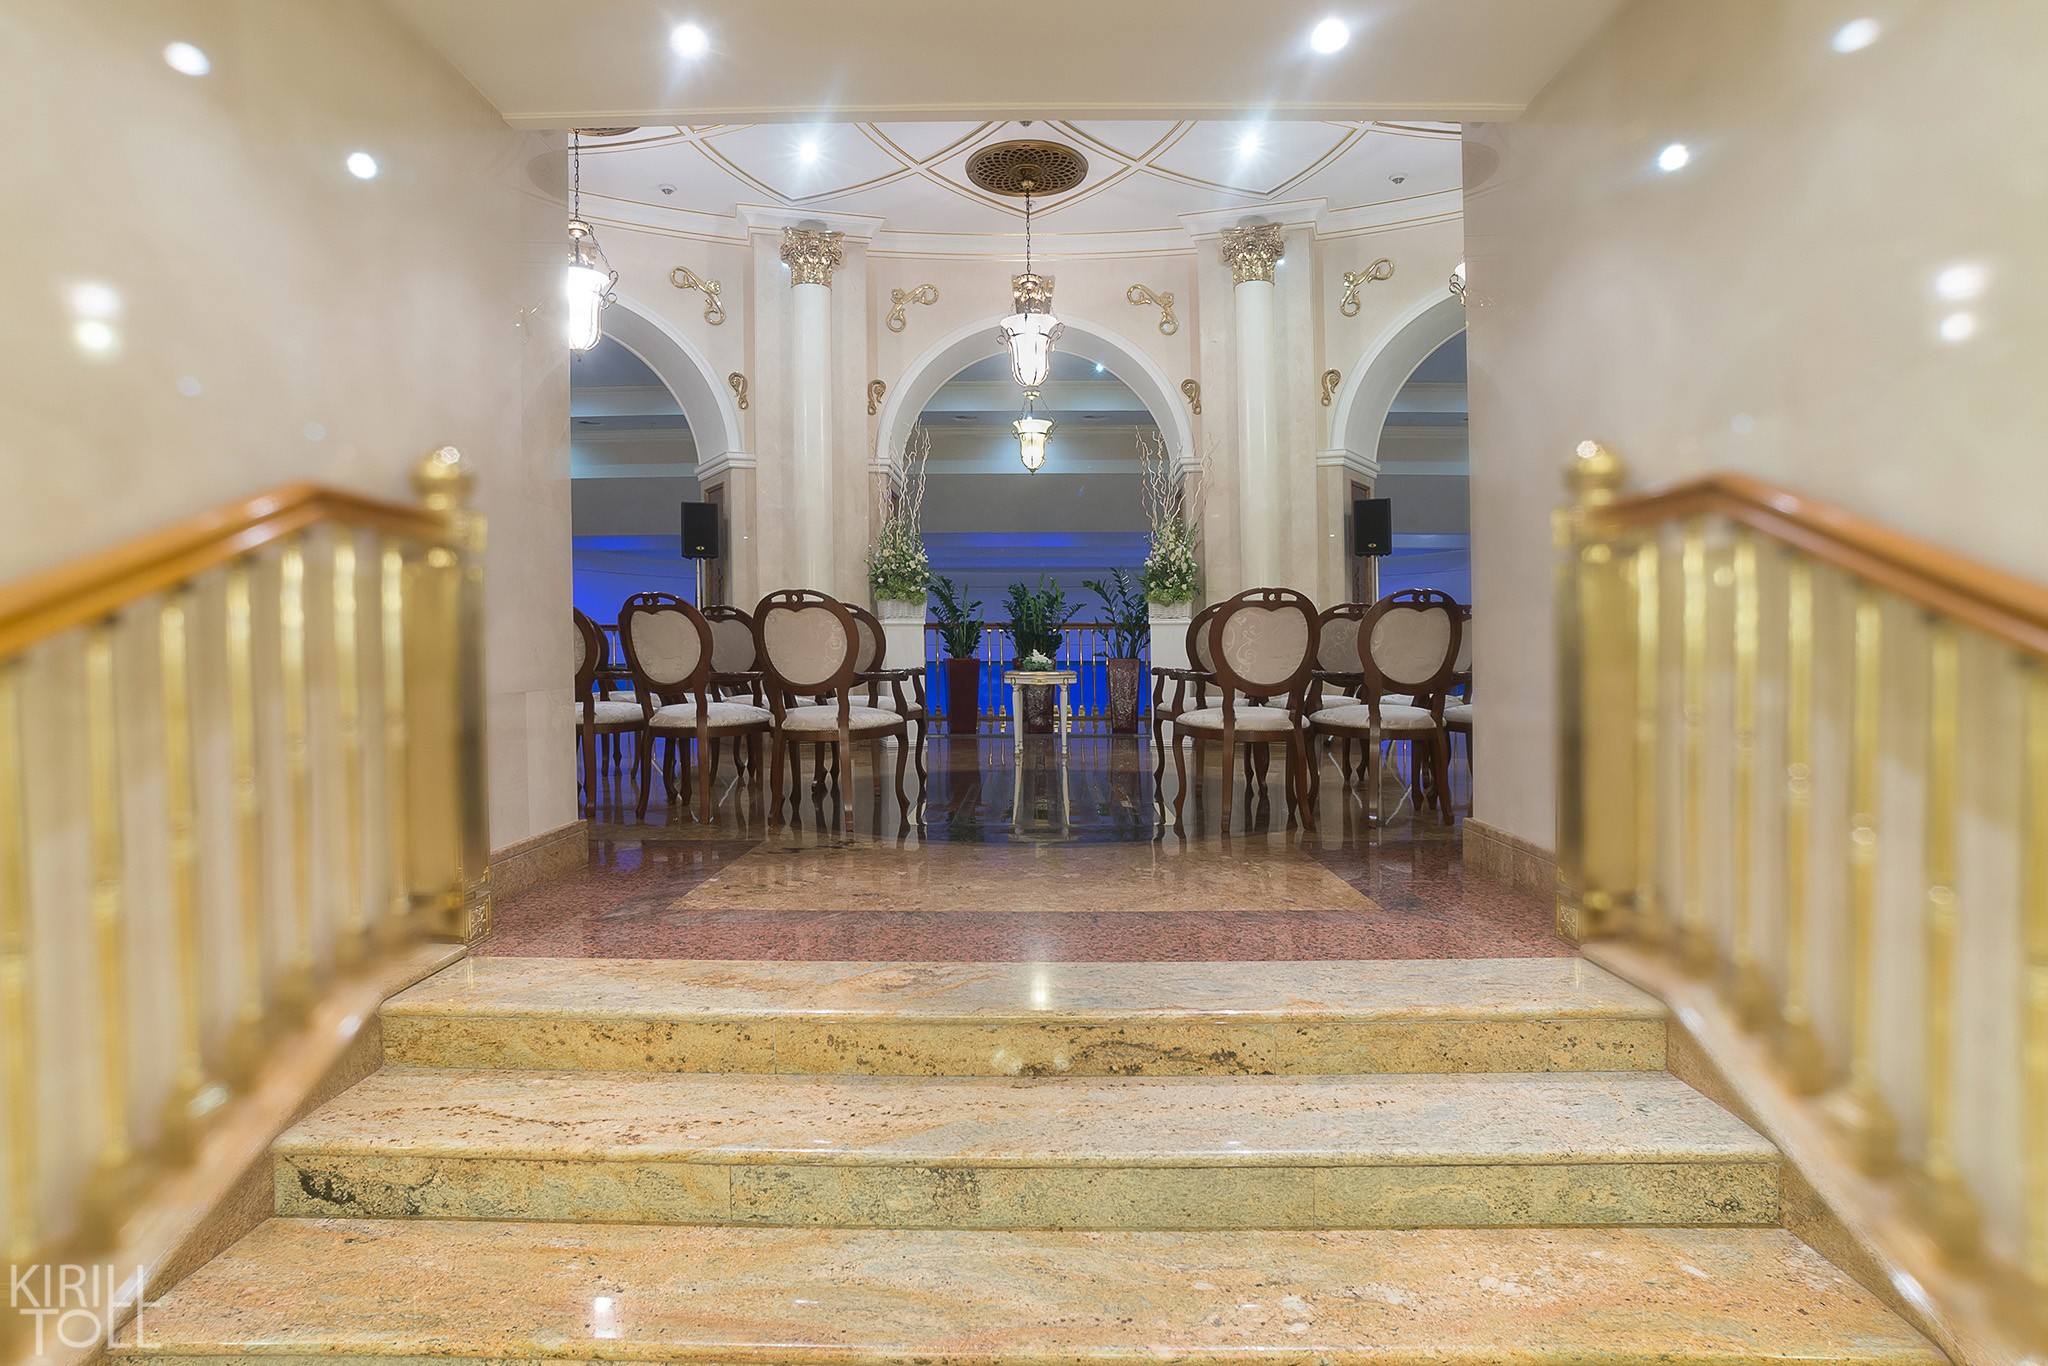 Professional photography of the halls and relaxation areas for the hotel